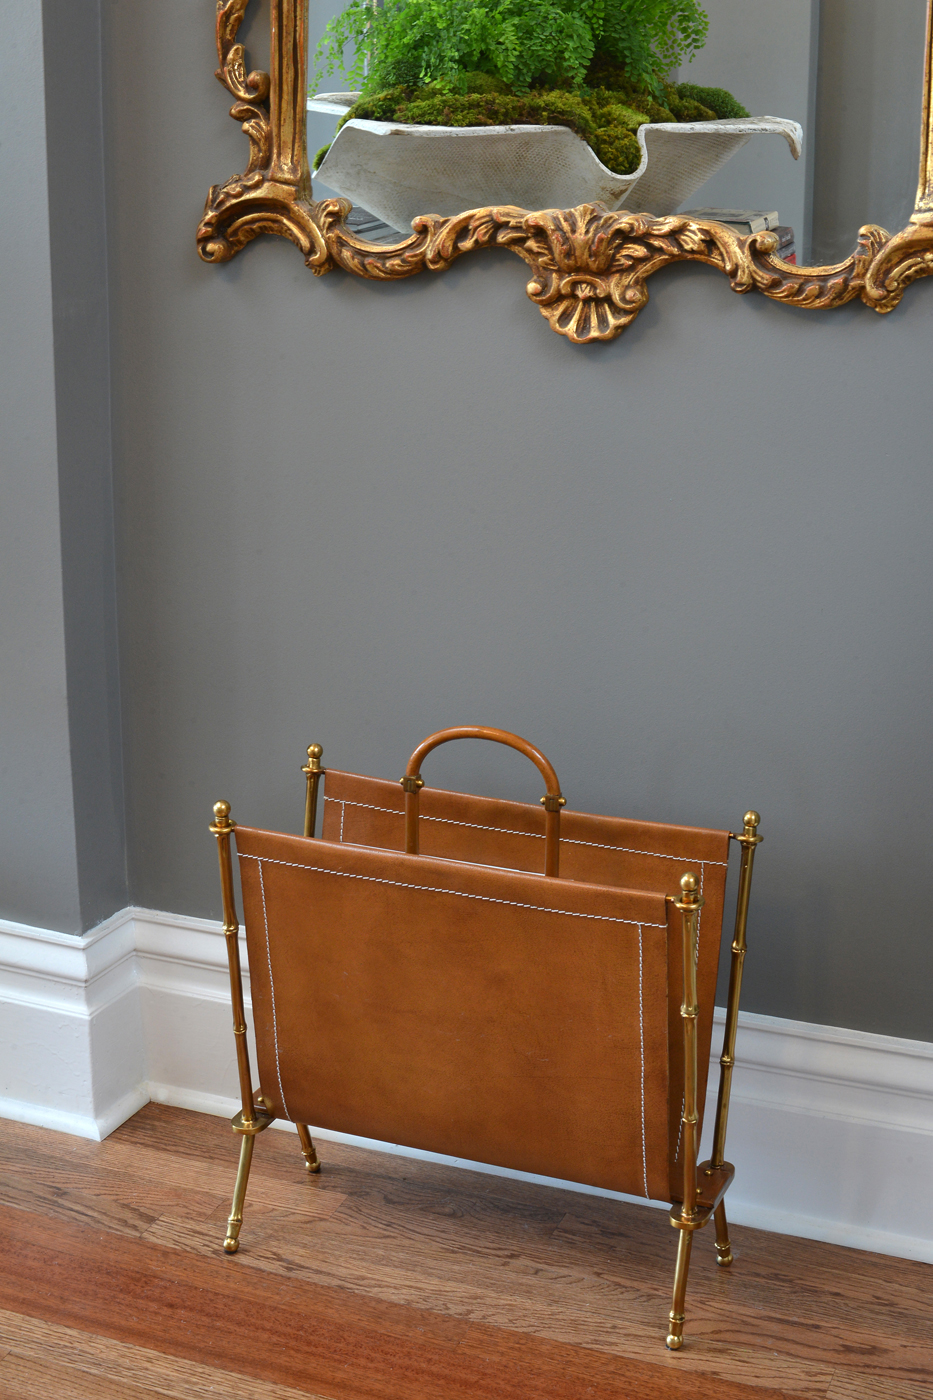 Detail of stylized metal faux bamboo and leather magazine holder in entry room | Savage Interior Design